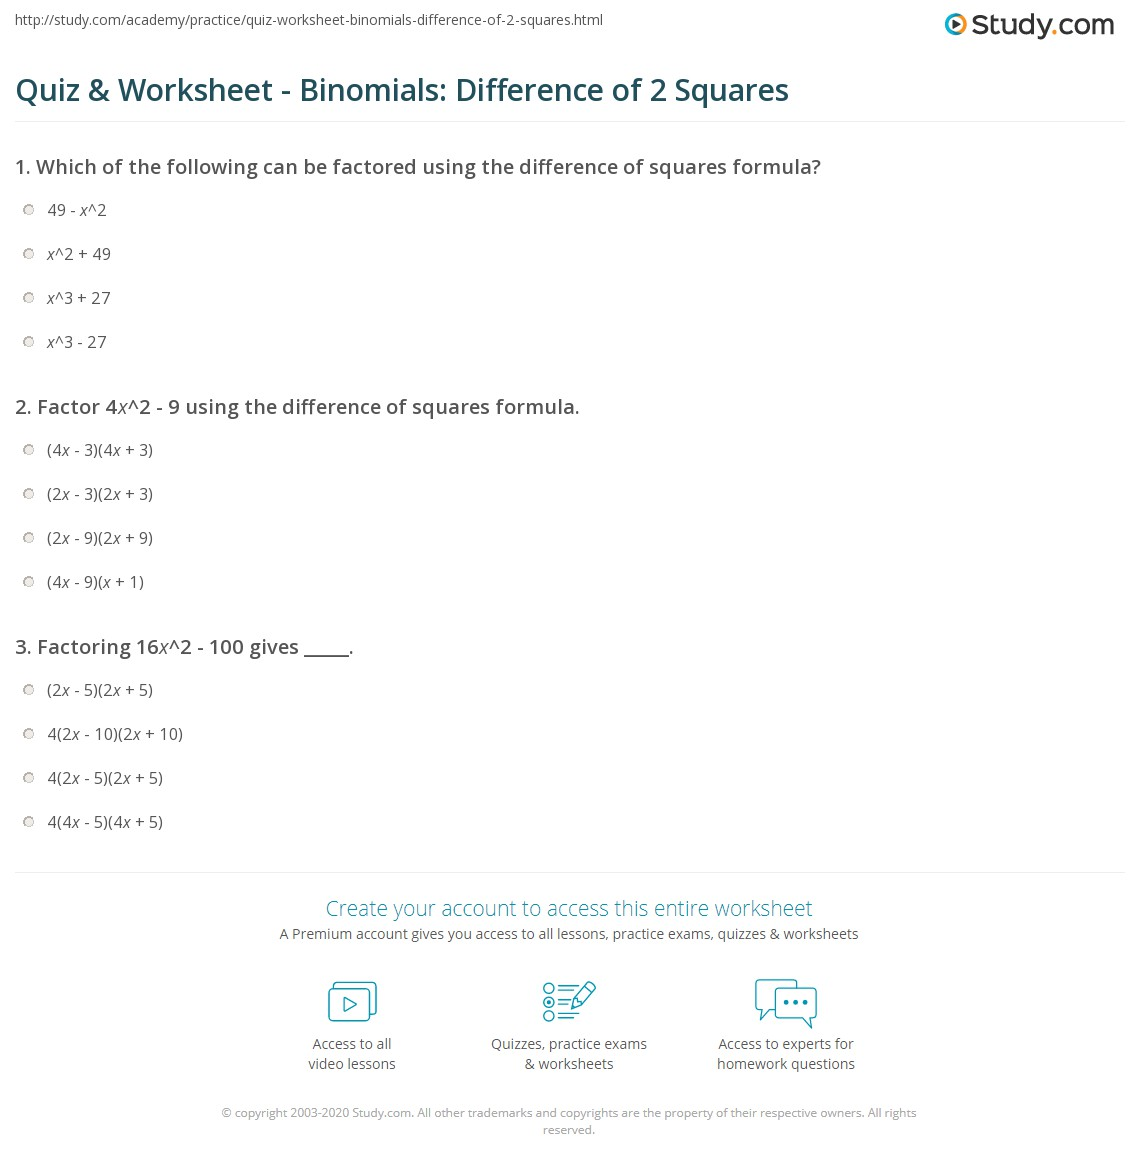 Free Worksheet Difference Of Two Squares Worksheet quiz worksheet binomials difference of 2 squares study com print two worksheet